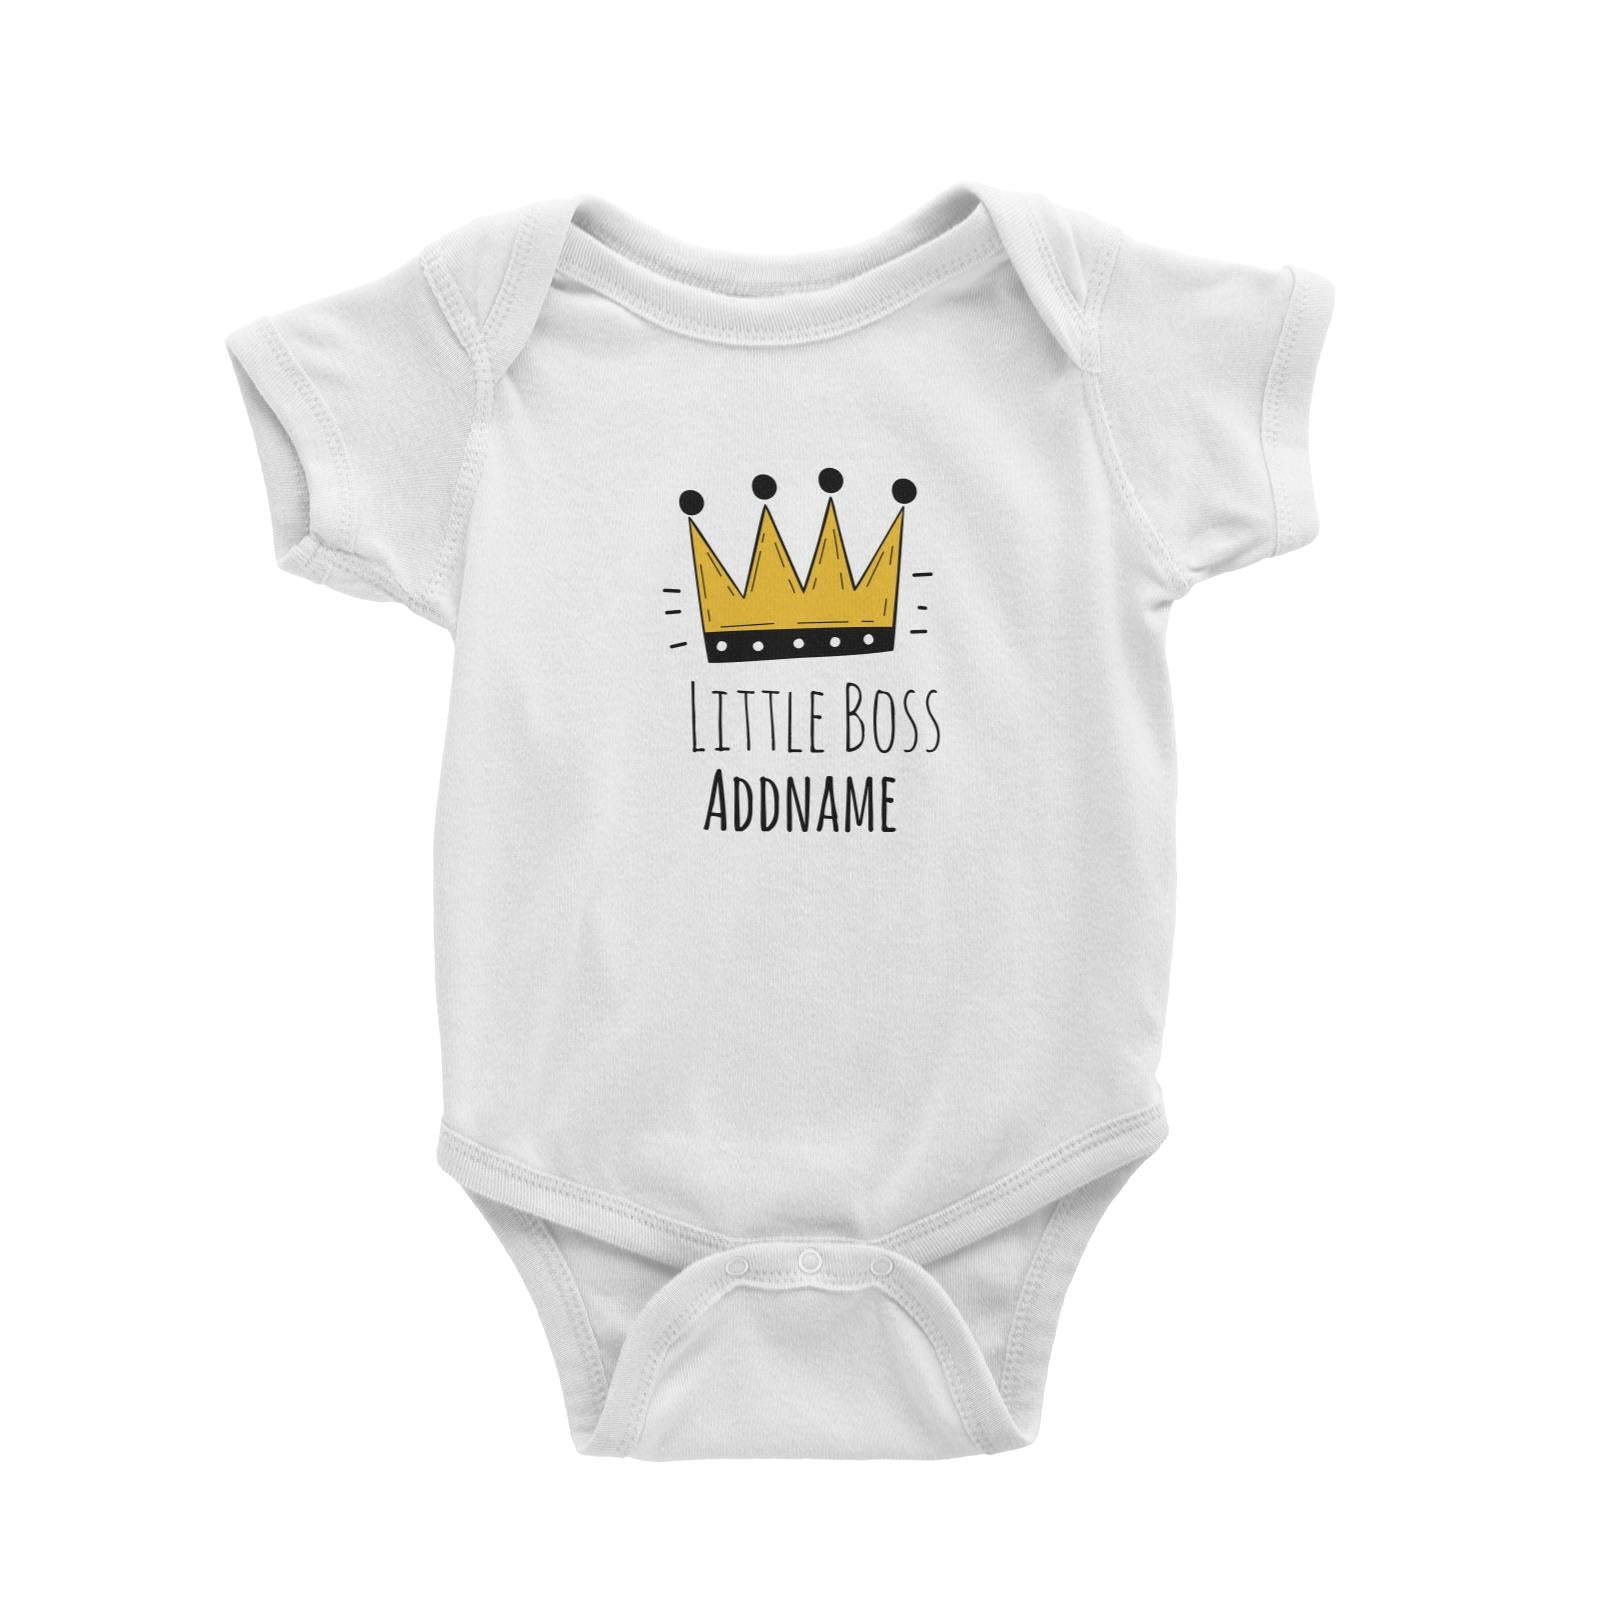 Drawn Crown Little Boss Addname Baby Romper